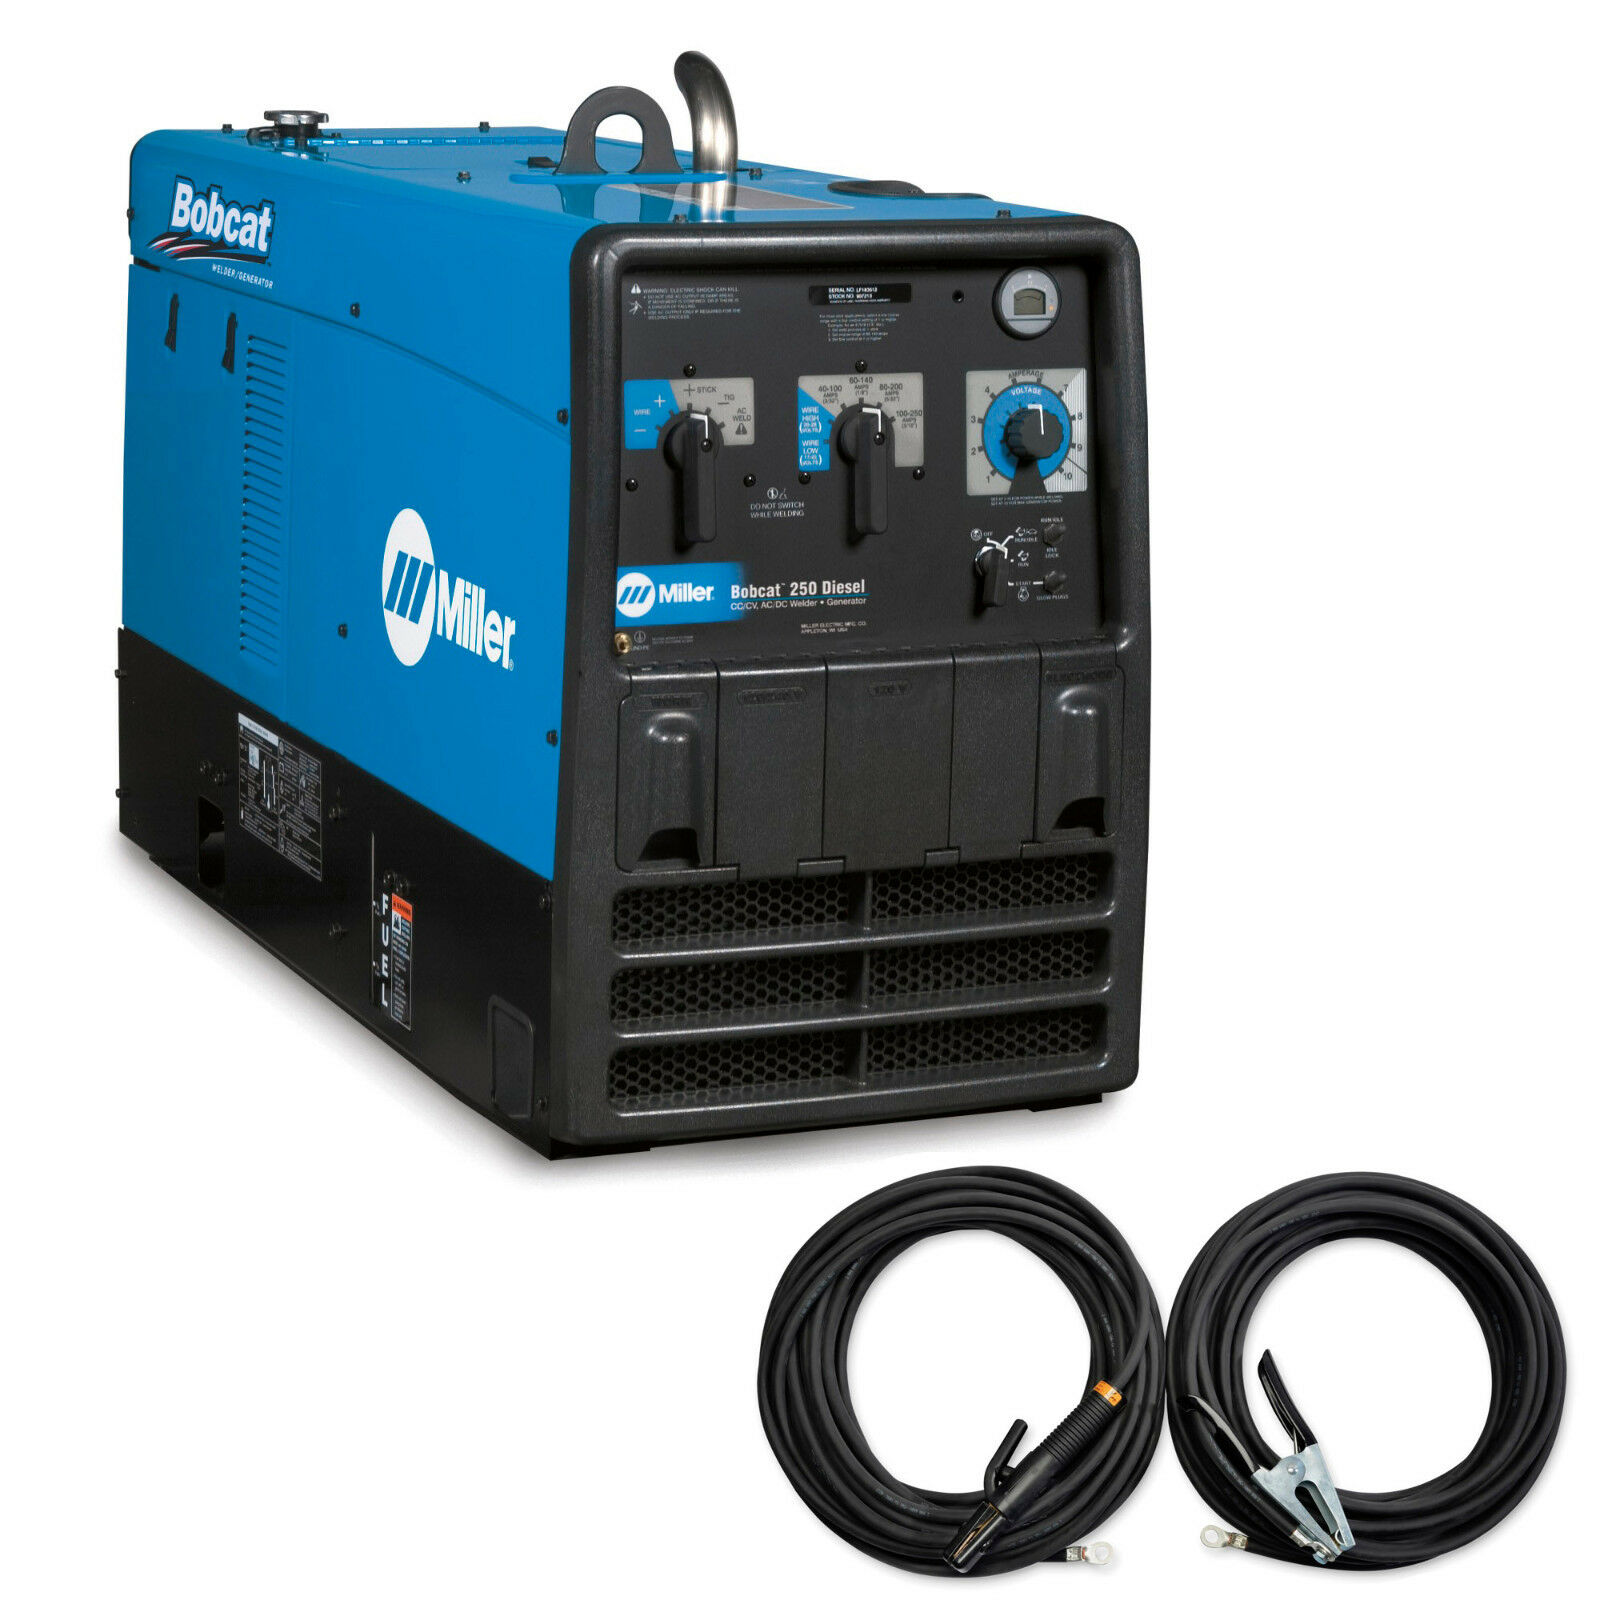 Miller 907565 Bobcat 250 Diesel Welder Generator With Gfci Ebay Also 220 Volt To Adapter On Cord Wiring Stock Photo